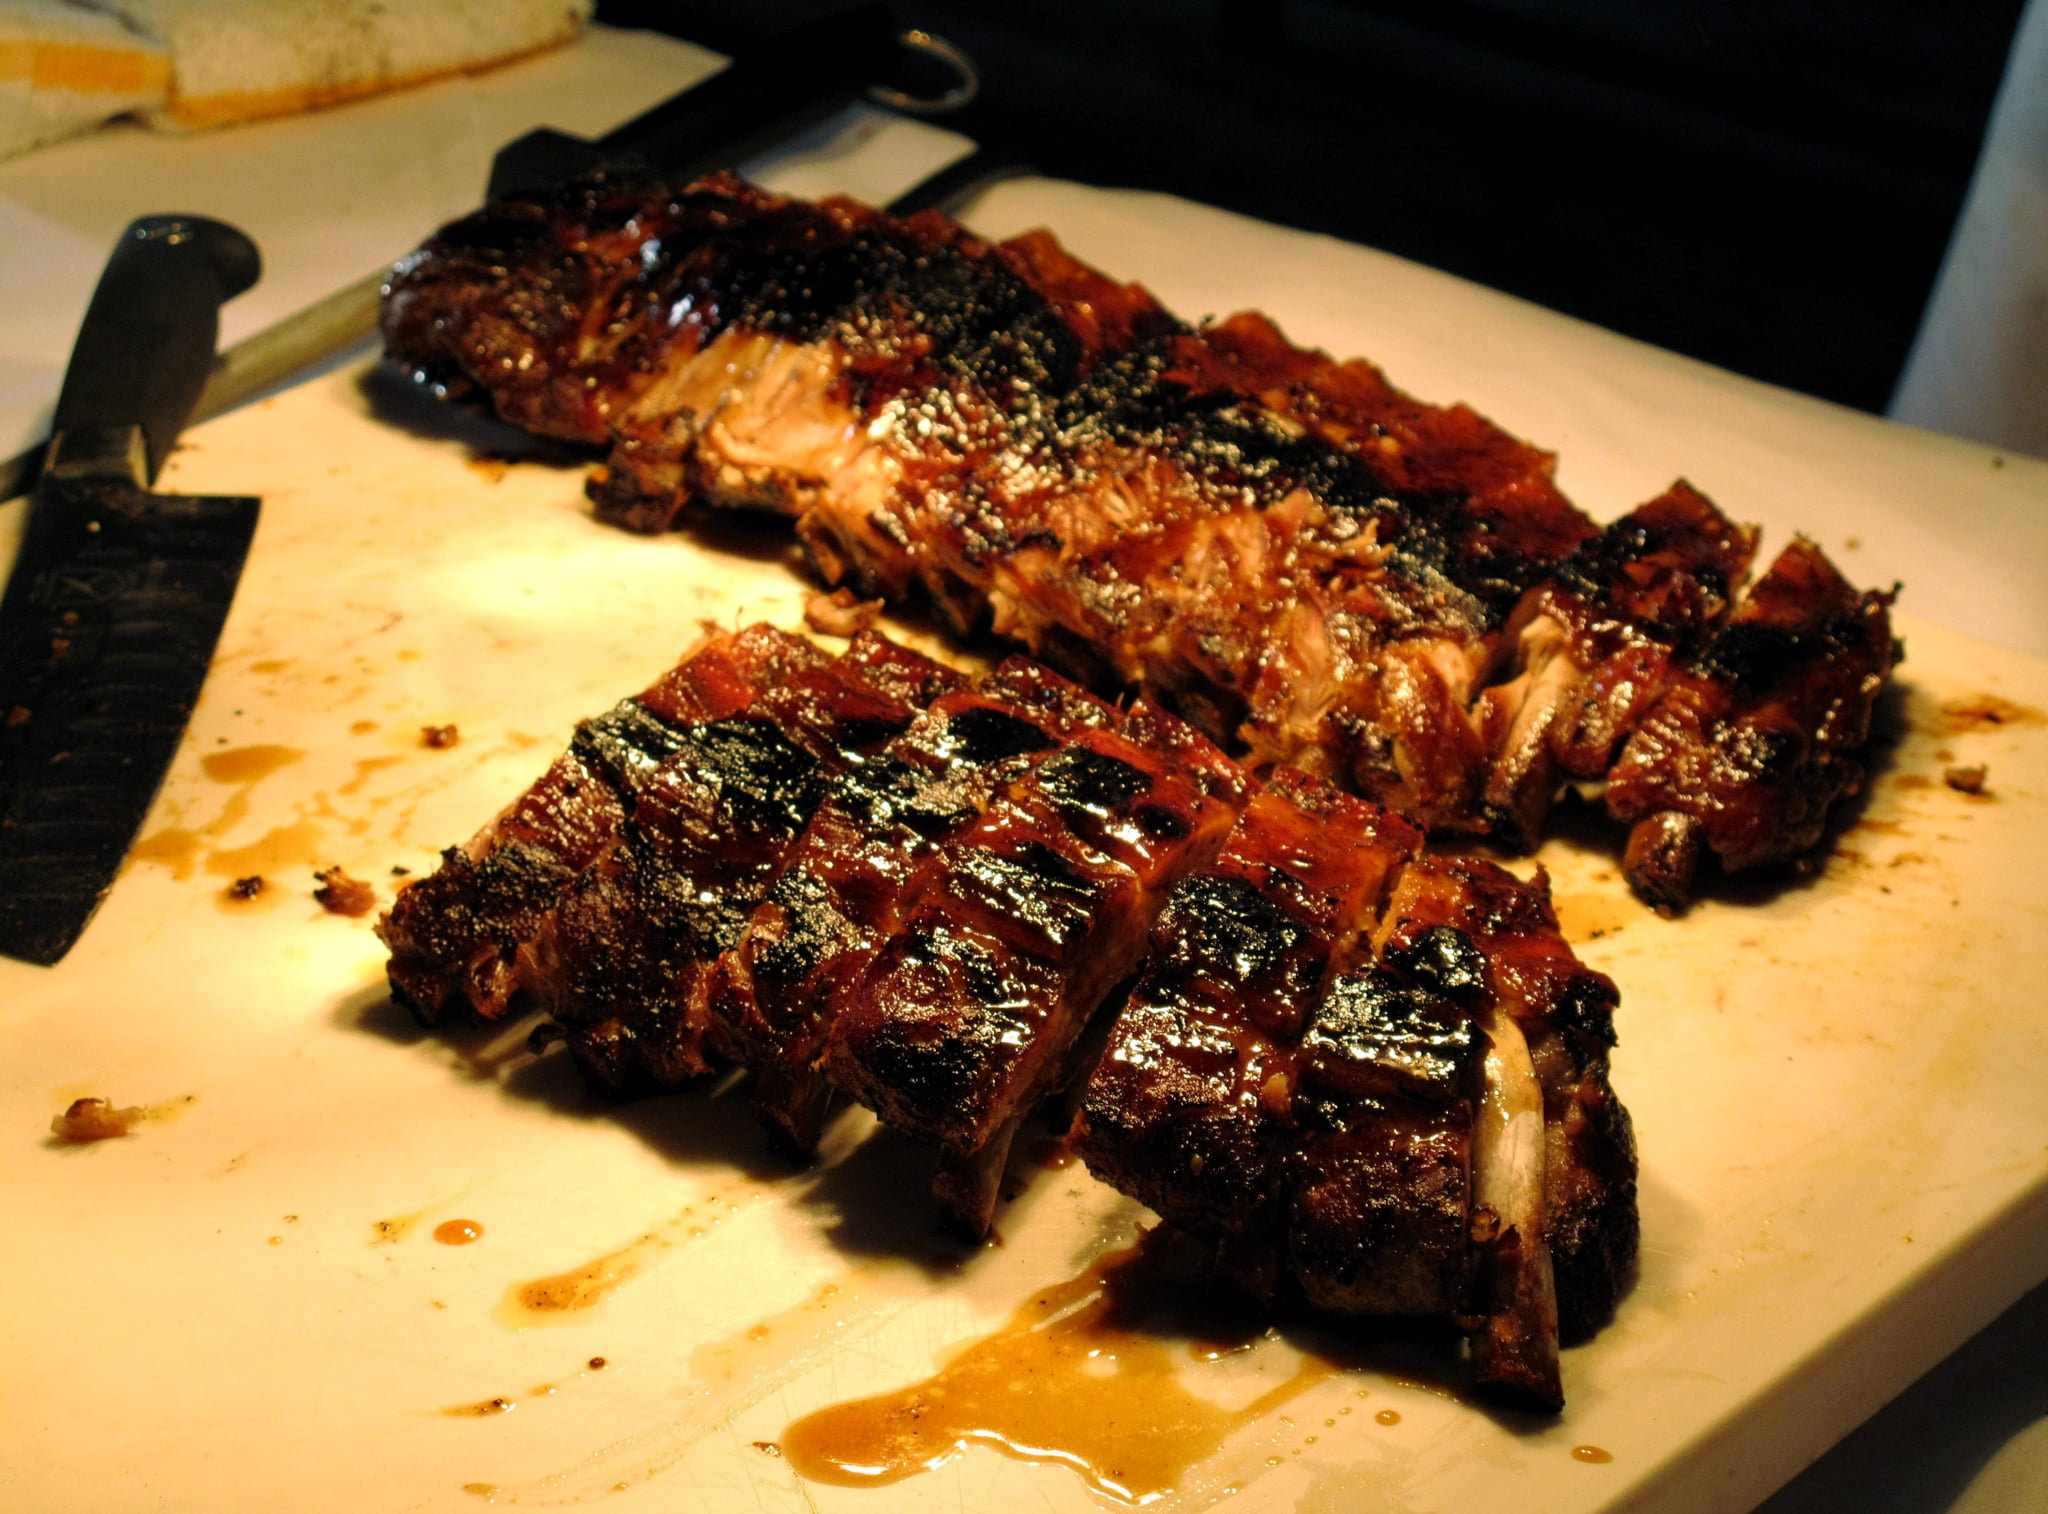 Charlie Palmer had his own station, where guests were served glazed pork ribs.